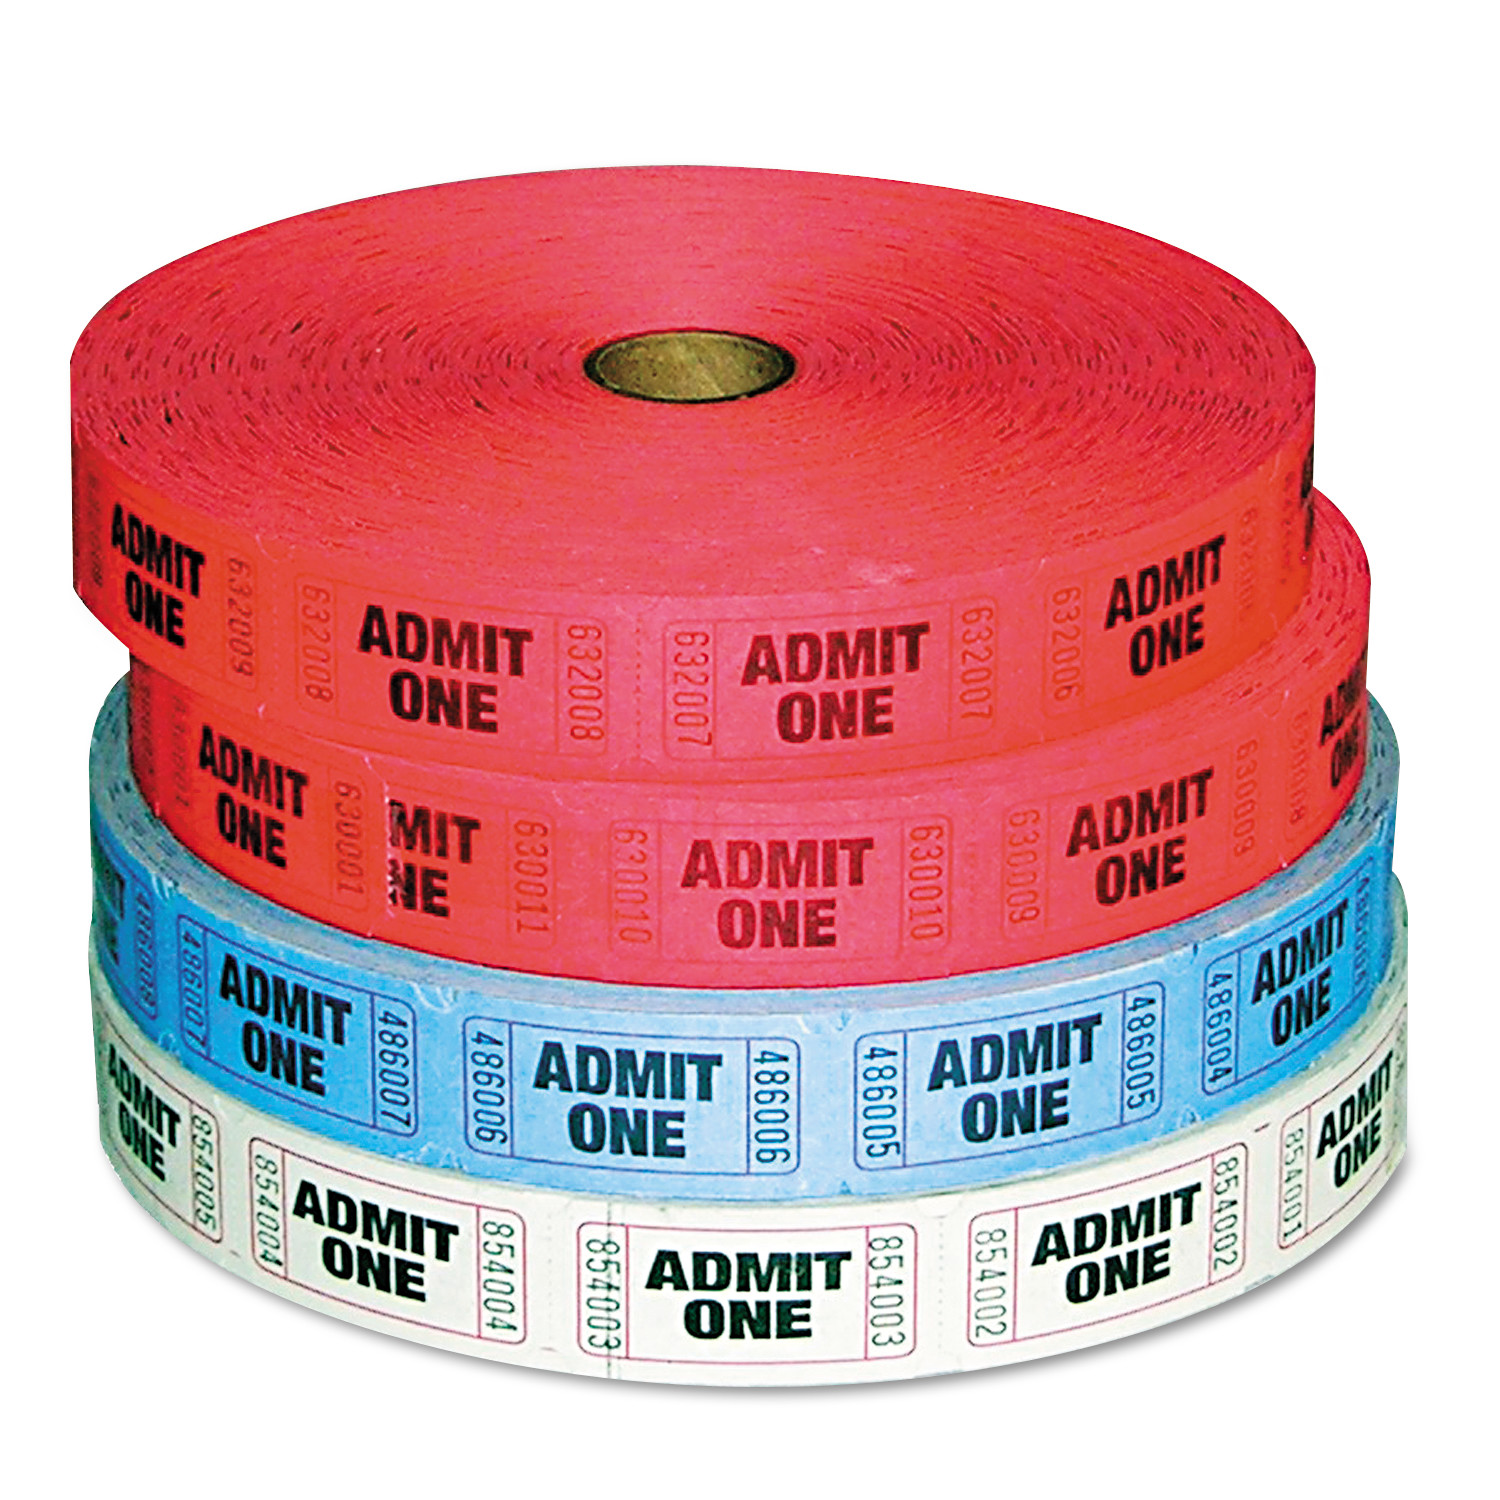 PM Company Admit-One Ticket Multi-Pack, 4 Rolls, 2 Red, 1 Blue, 1 White, 2000/Roll -PMC59001